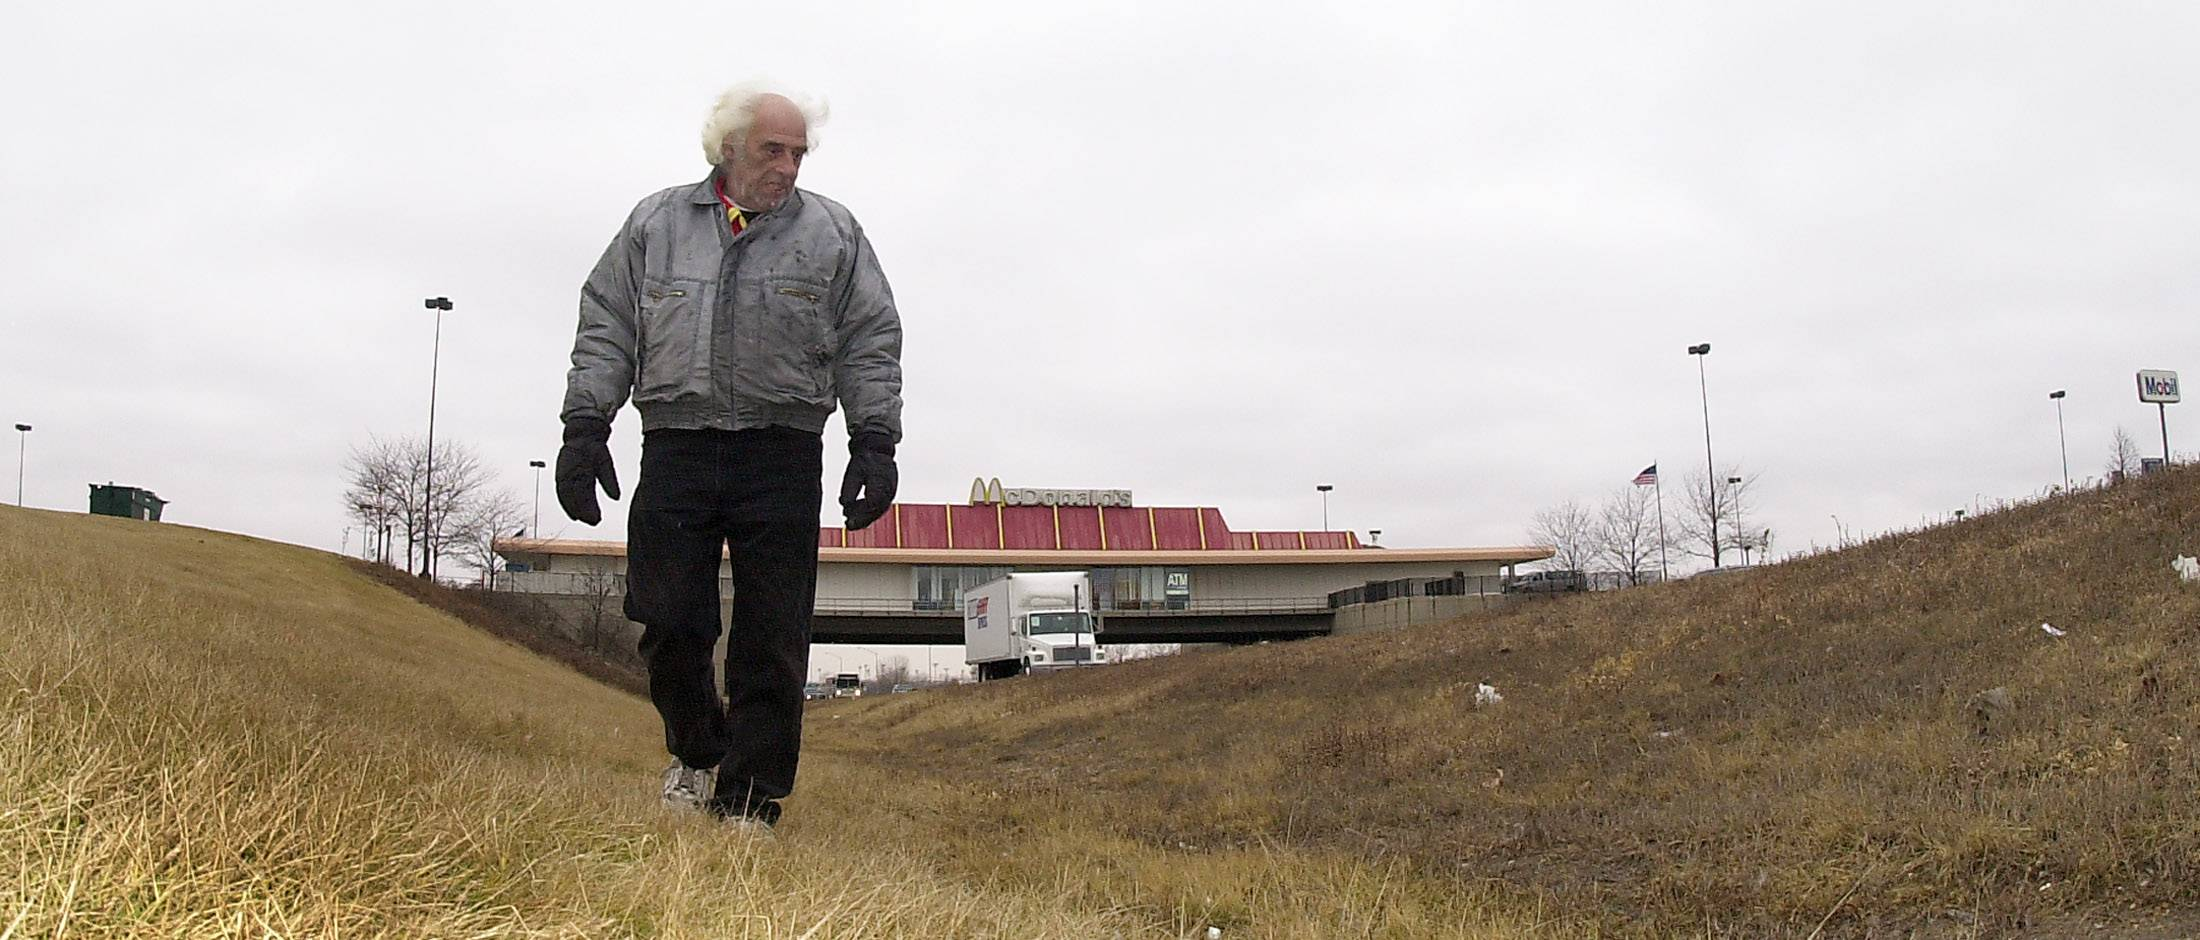 Looking for cigarette packages with UPC codes, Richard David of Wooddale walks along the tollway next to the highway looking to collect. He uses the codes to send in and get clothes and other items offered through the company.